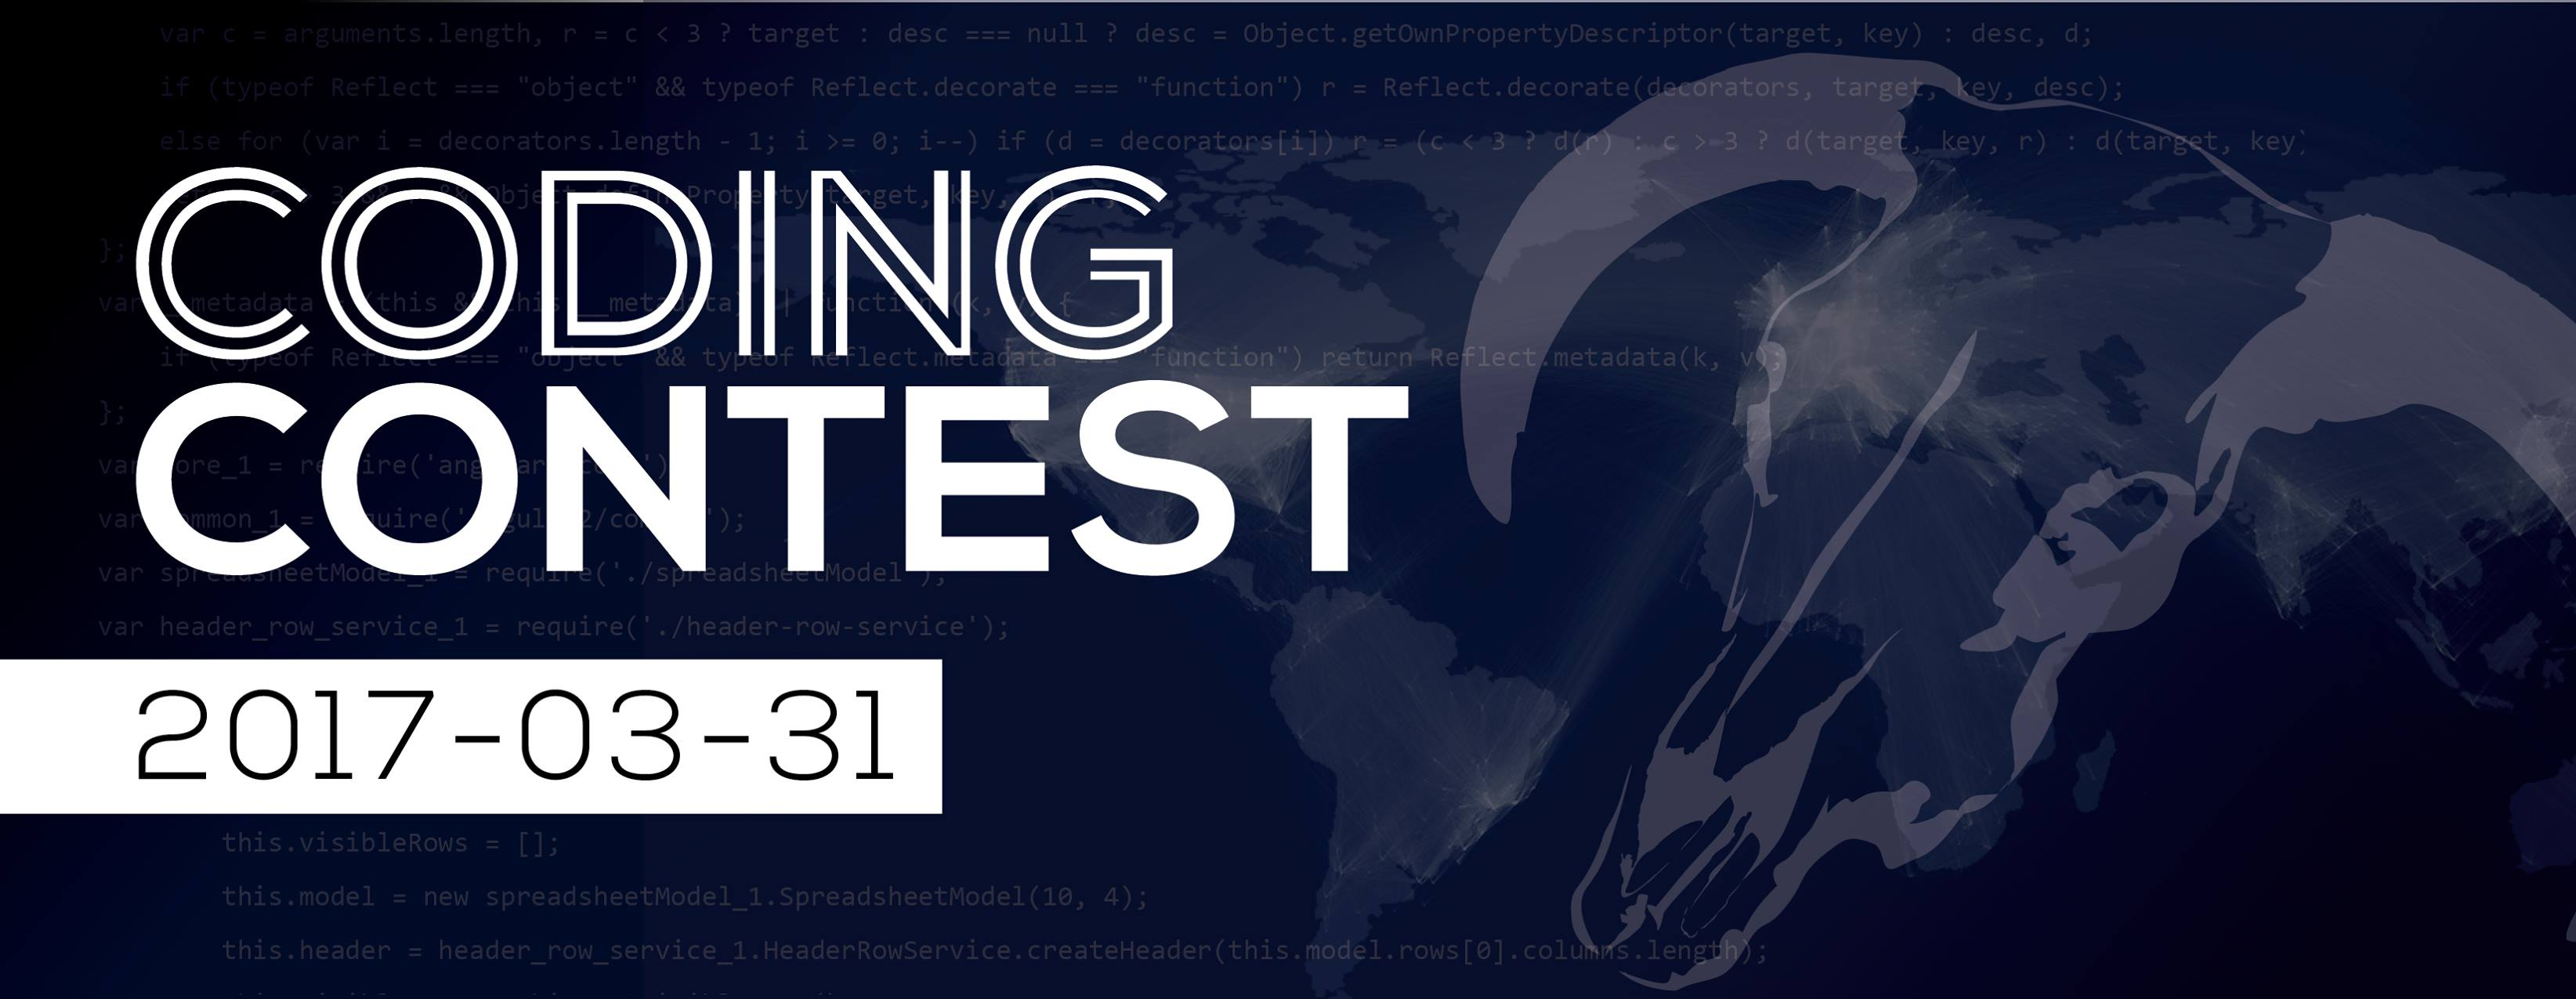 Coding Contest 2017- Bucharest Image